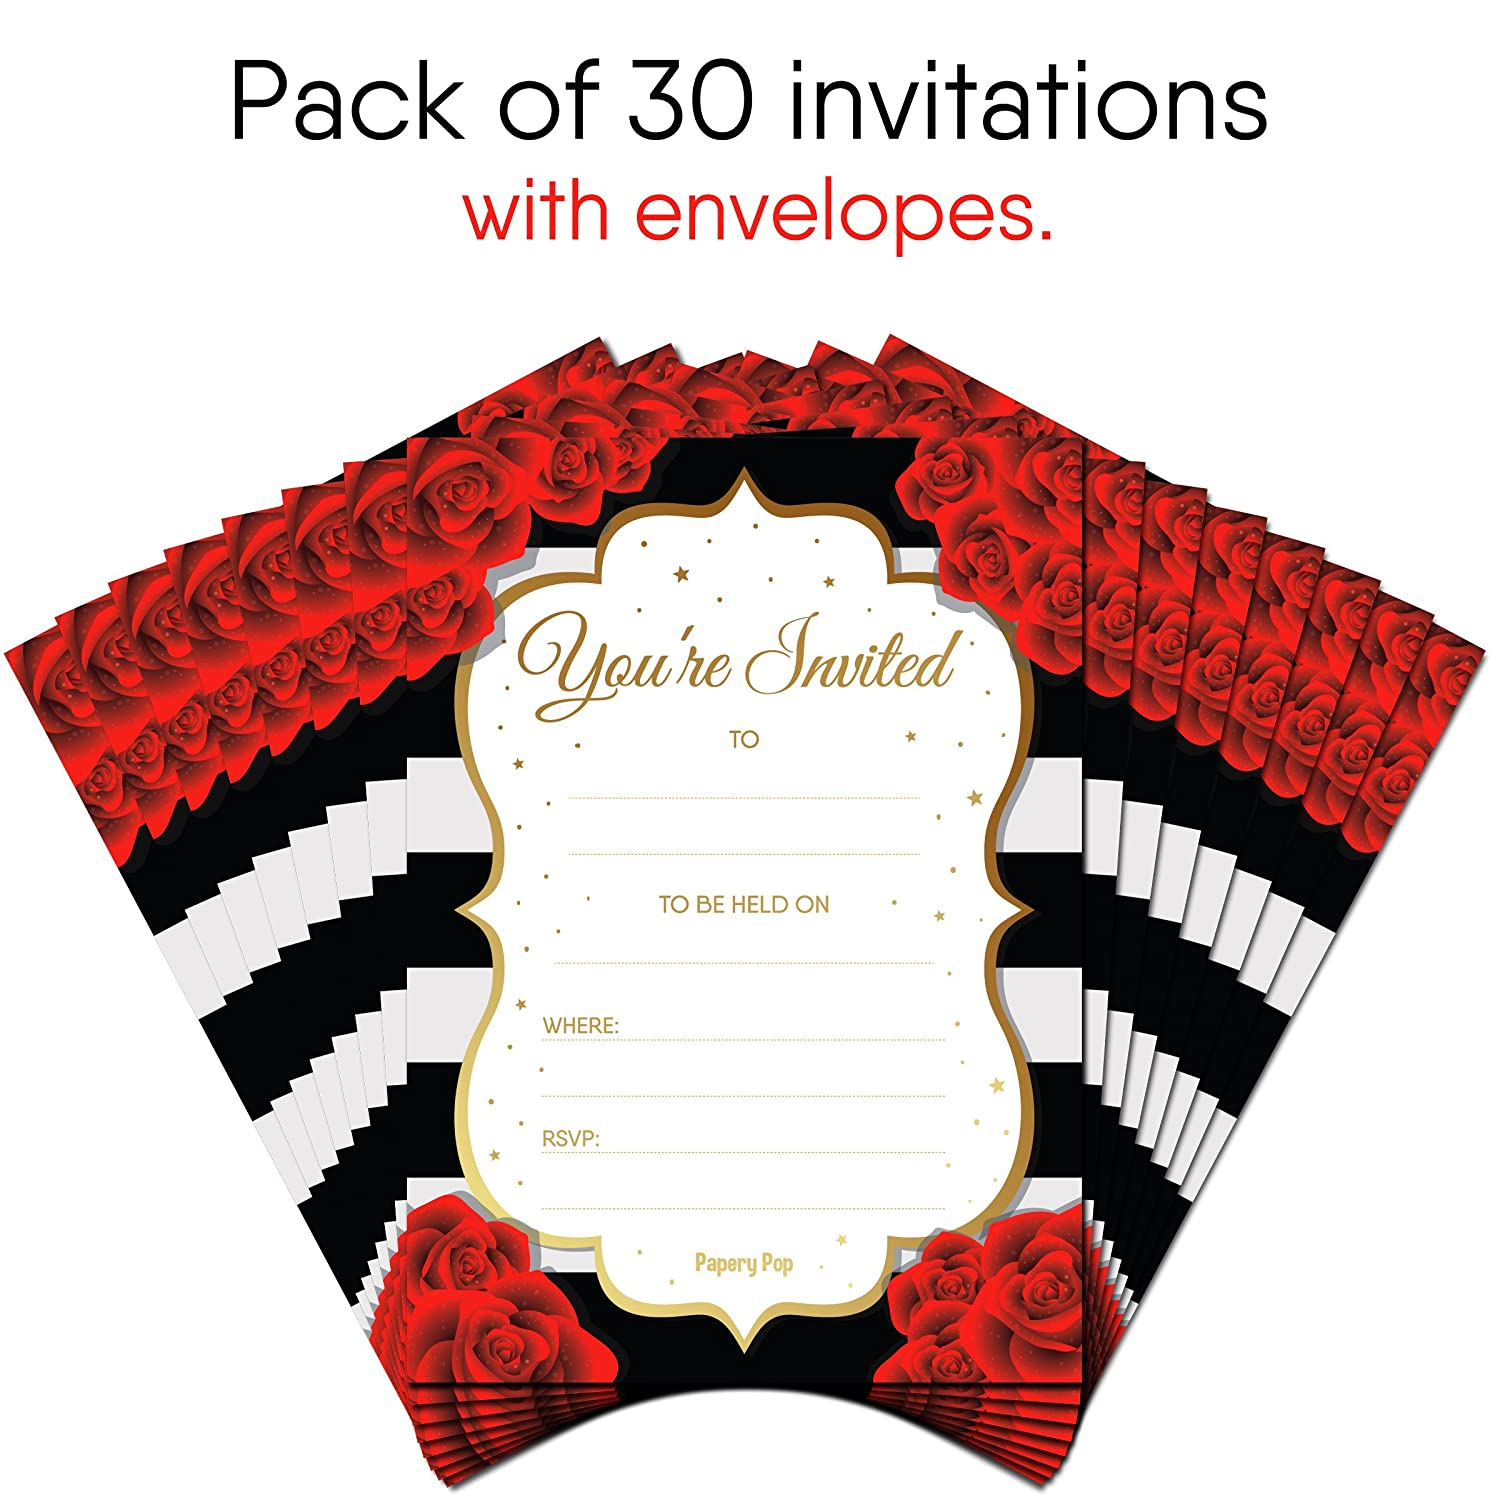 Amazon.com: 30 Invitations with Envelopes - Bridal Shower ...